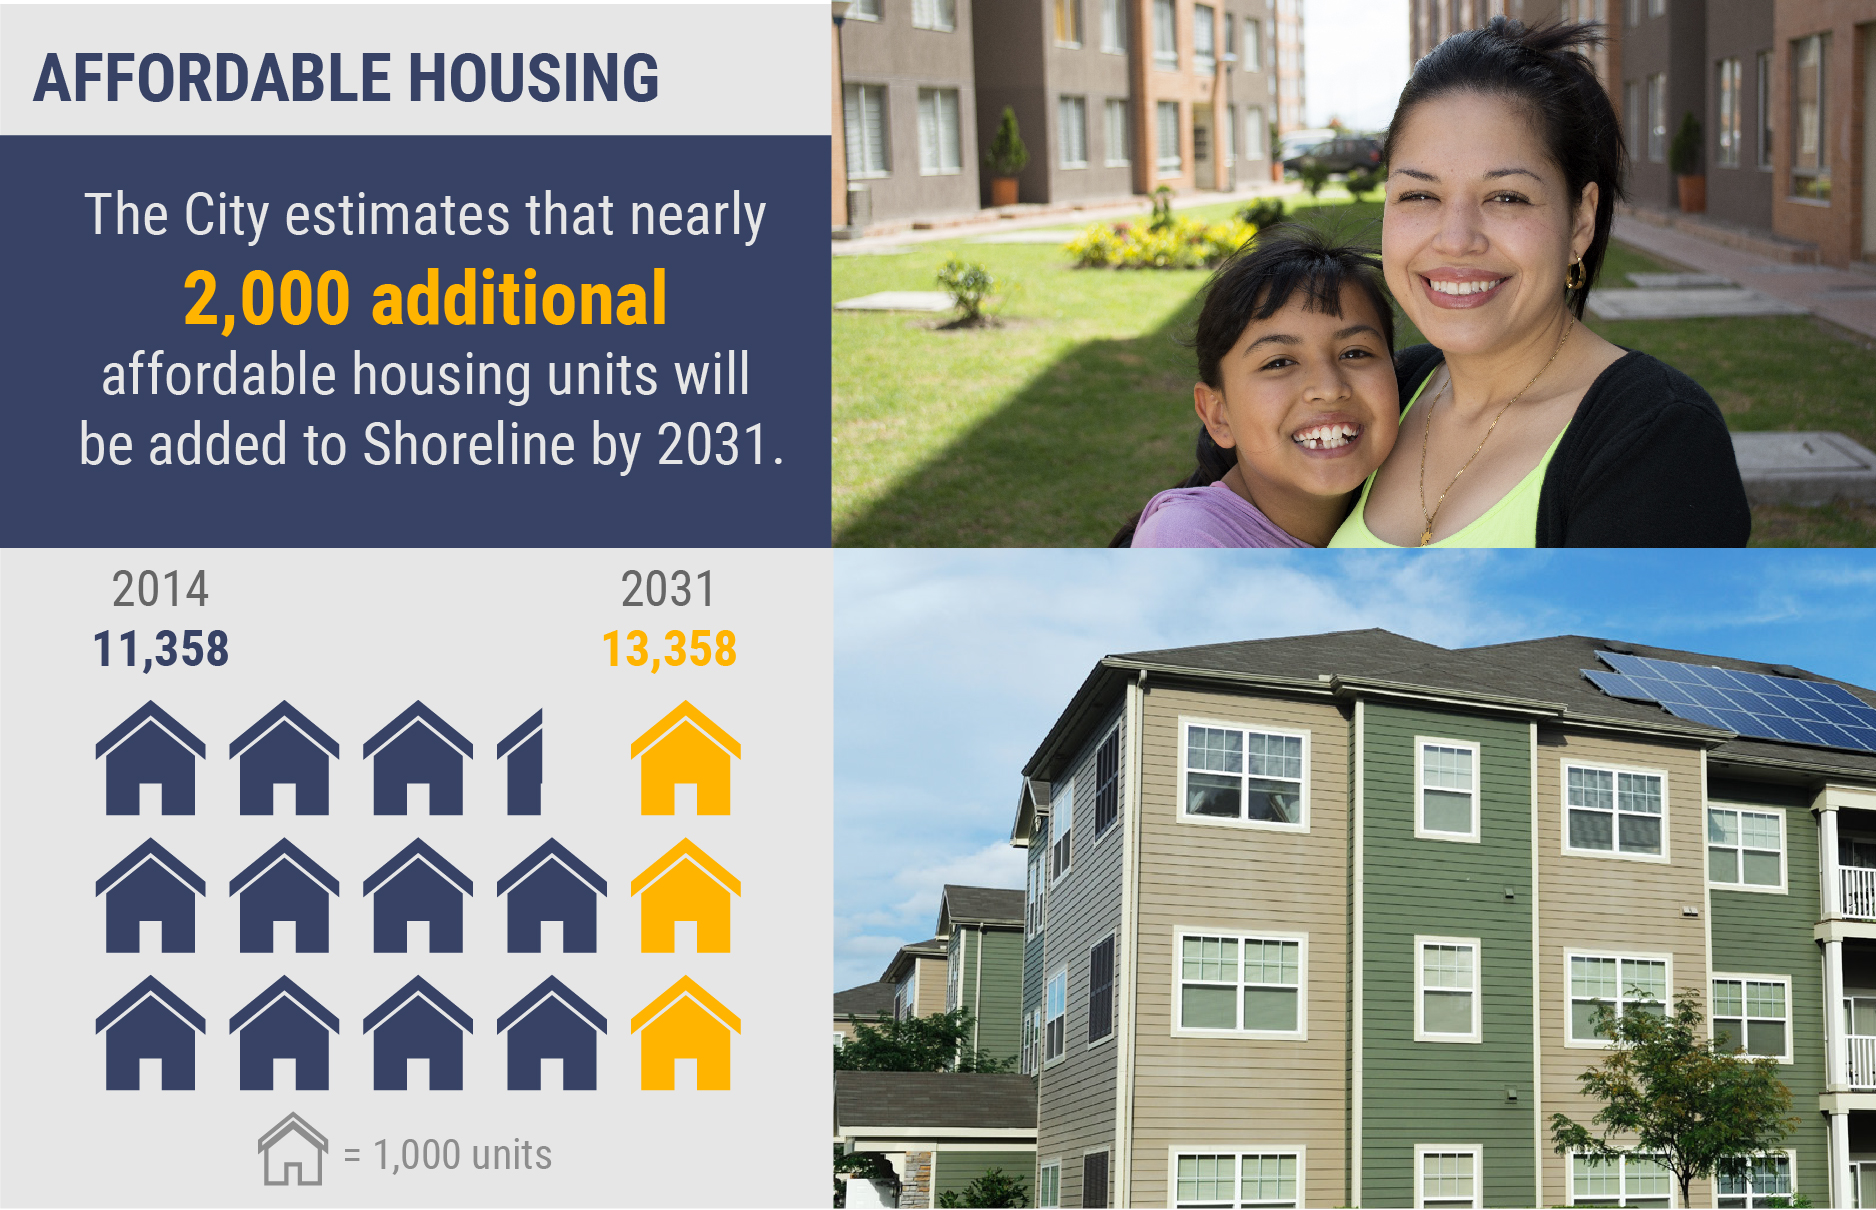 Infographic on affordable housing. The City estimates that nearly 2,000 additional affordable housing units will be in Shoreline by 2031. That's from 11,358 in 2014 to 13,258 in 2031.